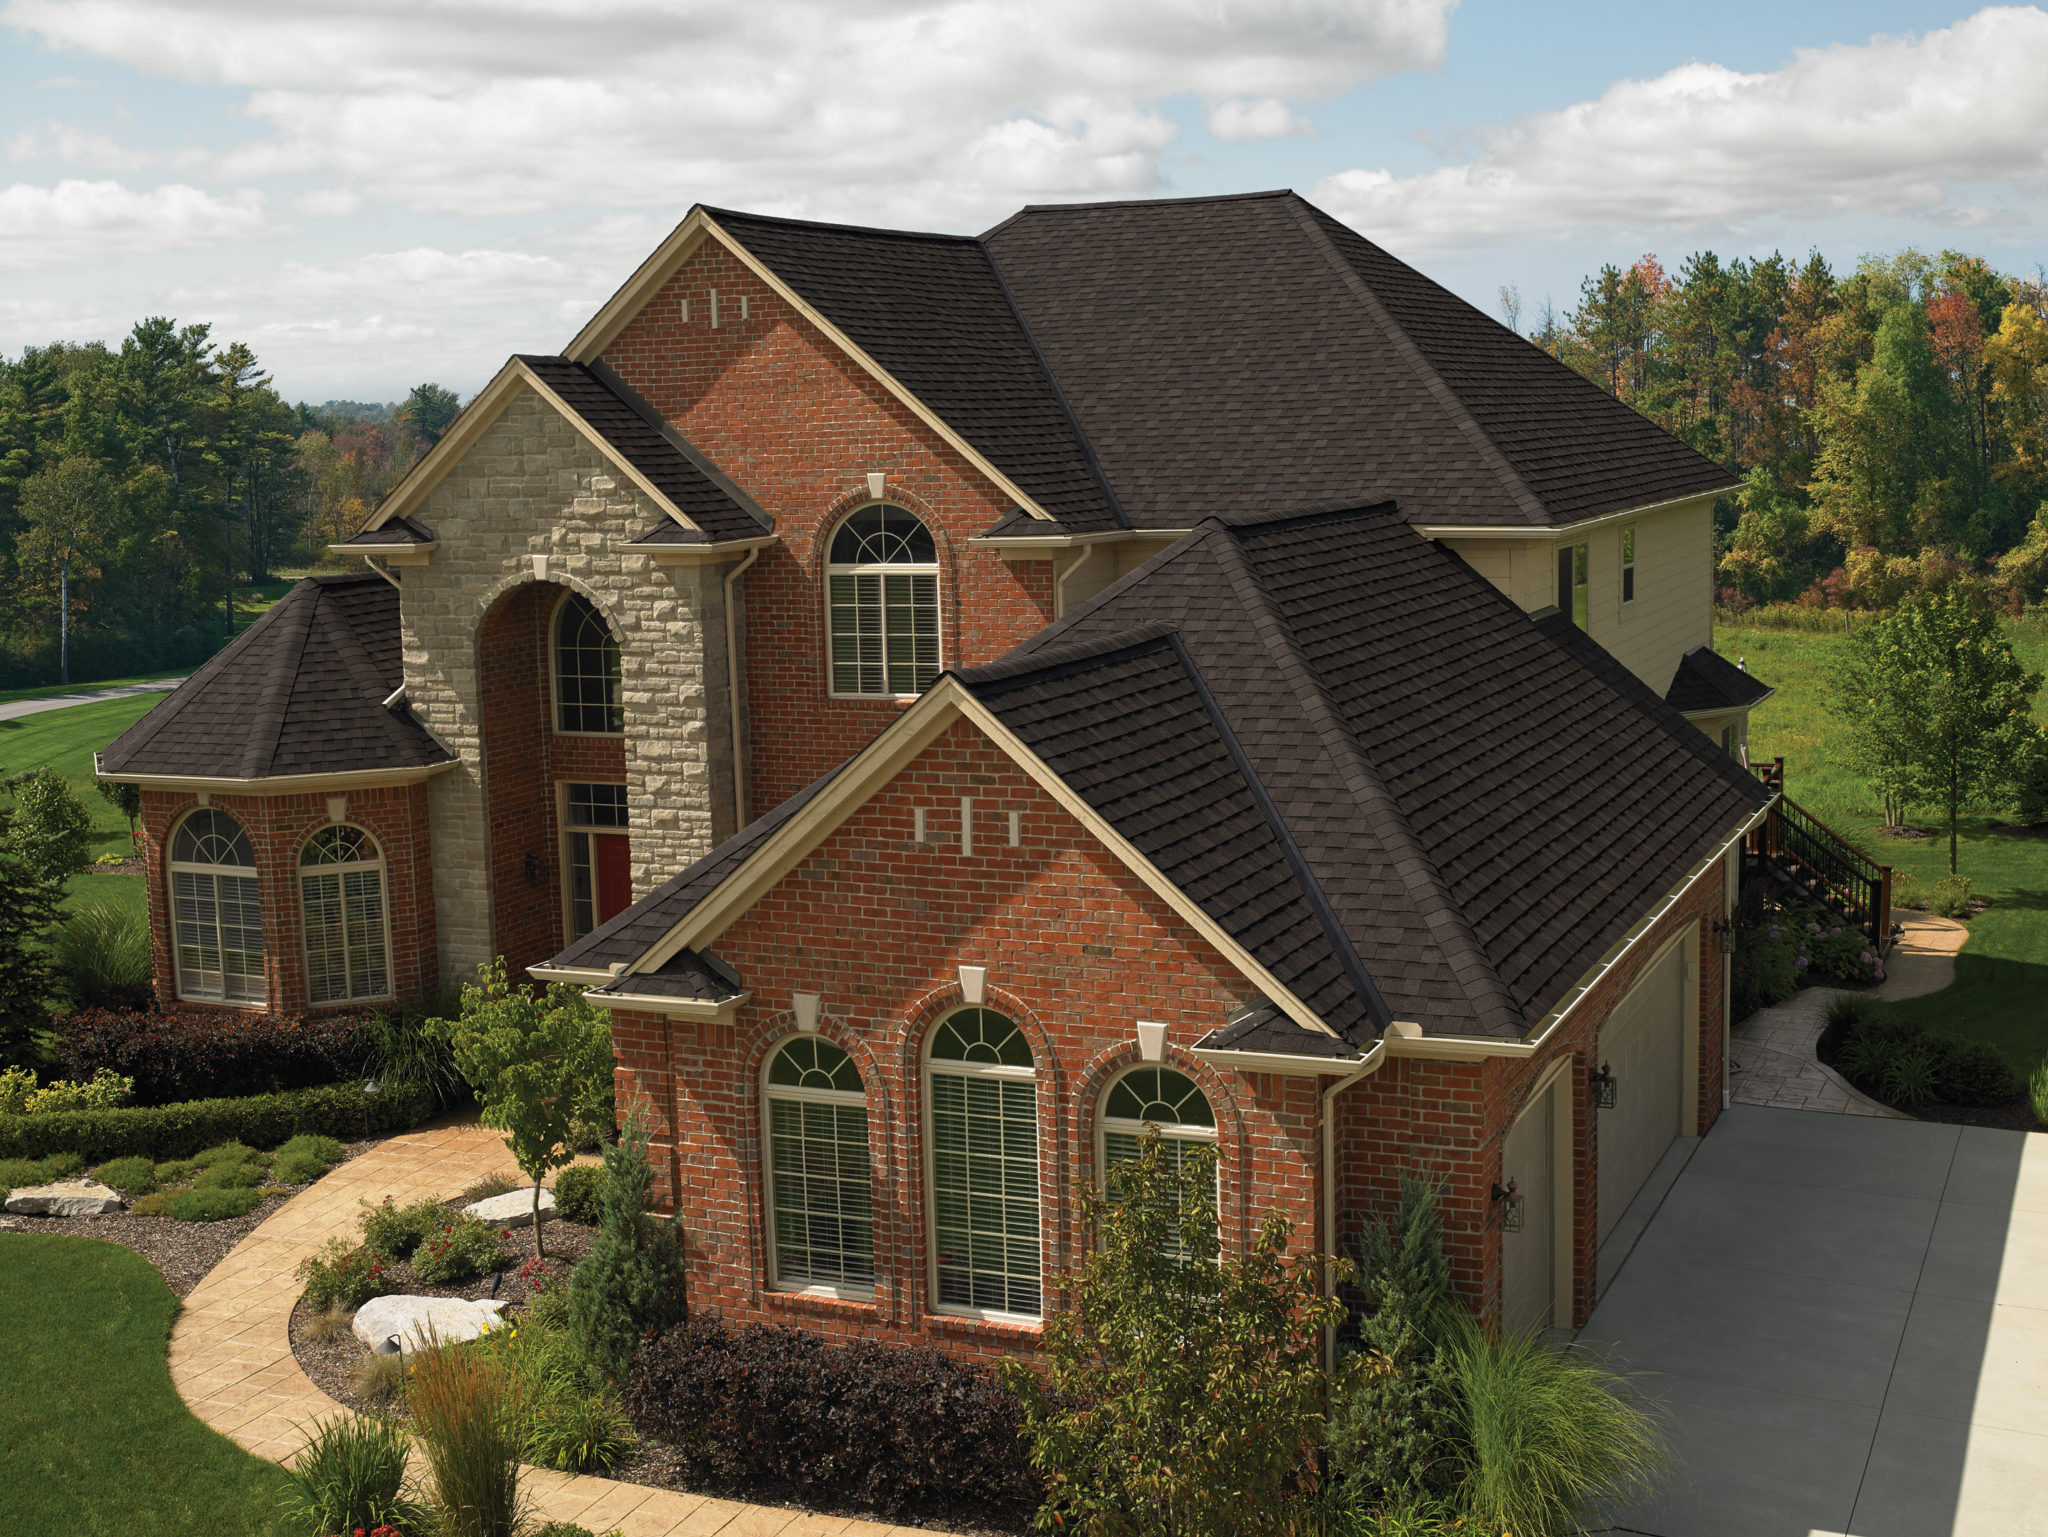 smoky red brick house with dark brown-black roof shingles